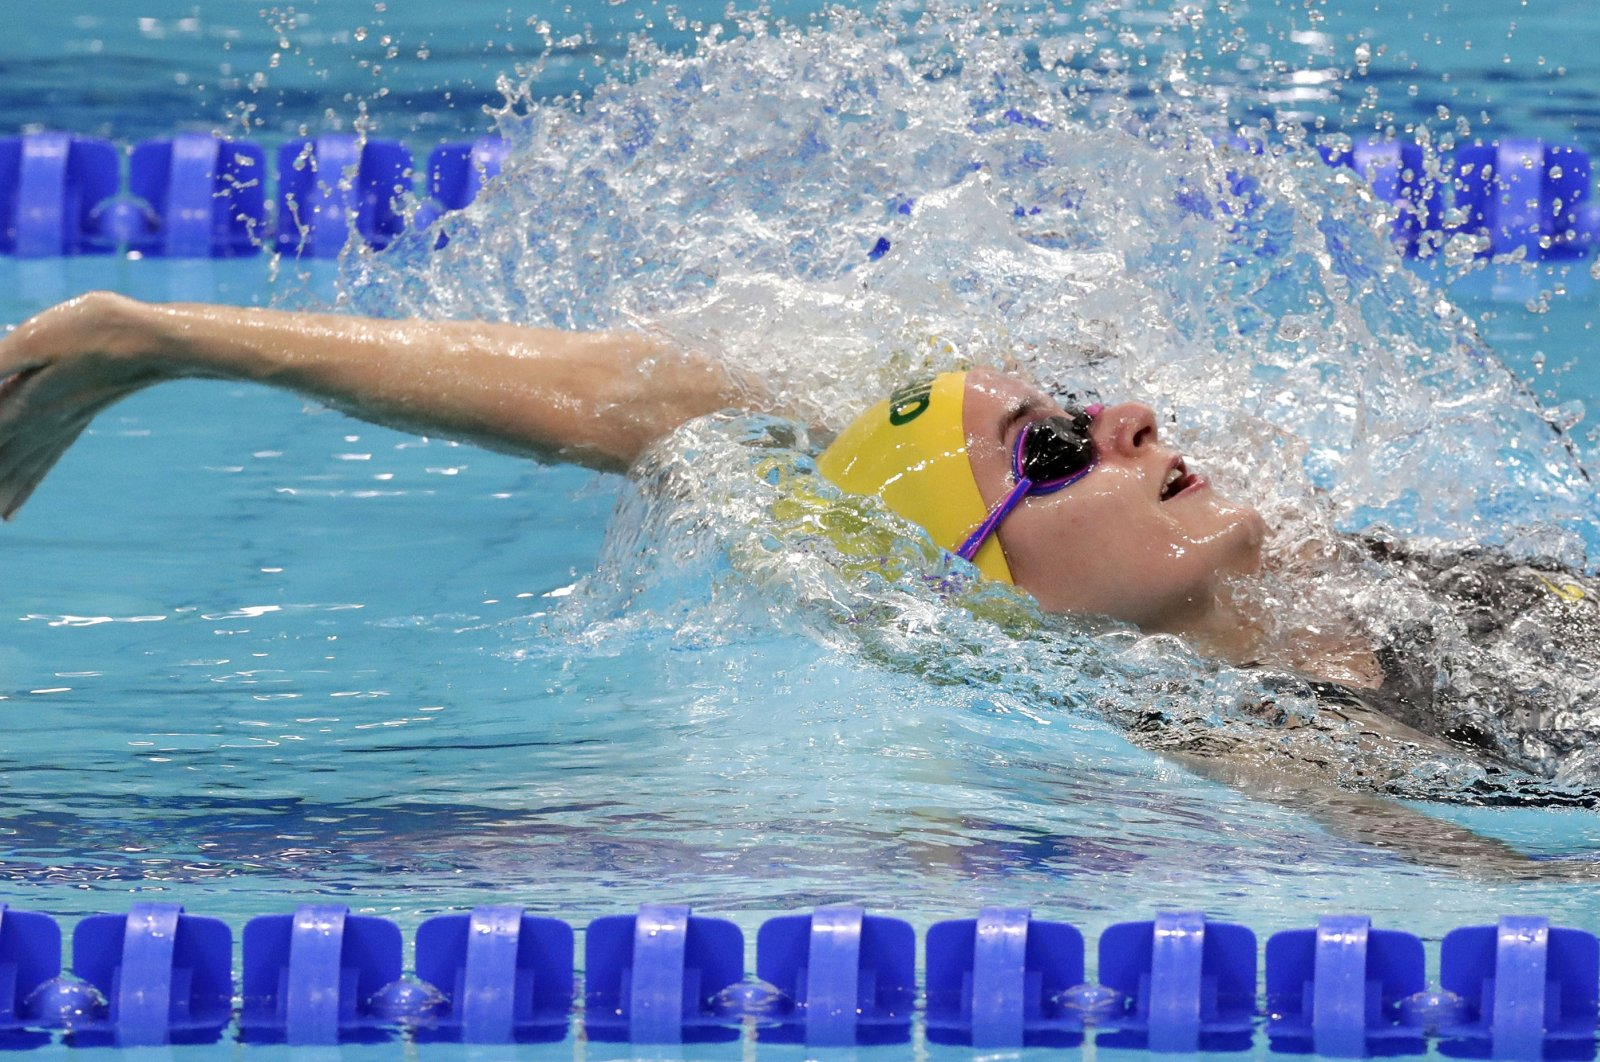 Australia's Kaylee McKeown competes in a women's 200-meter backstroke heat during the swimming competitions of the World Aquatics Championships in Budapest, Hungary, July 28, 2017. (AP Photo)